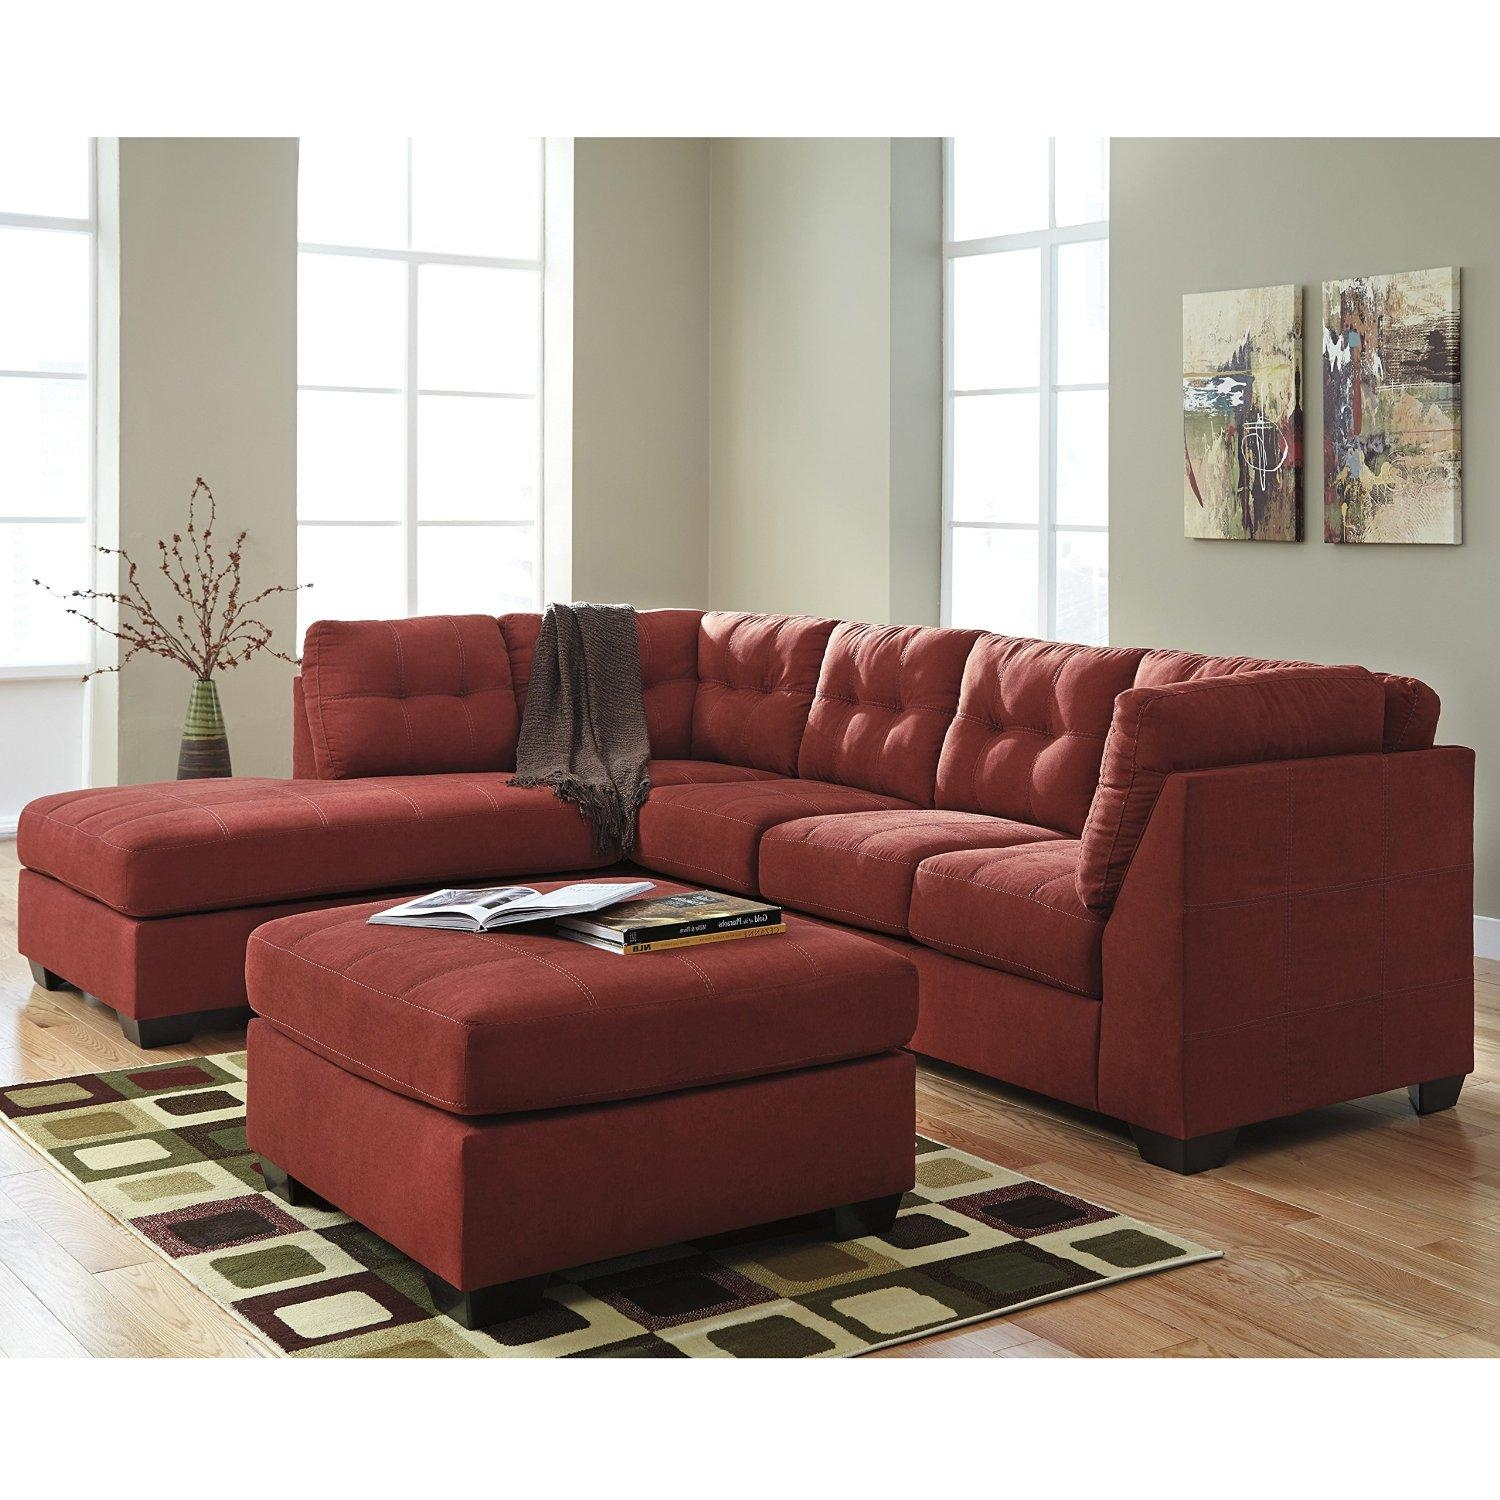 Berkline Benchcraft Furniture Images – Reverse Search Within Berkline Sectional Sofa (View 10 of 15)